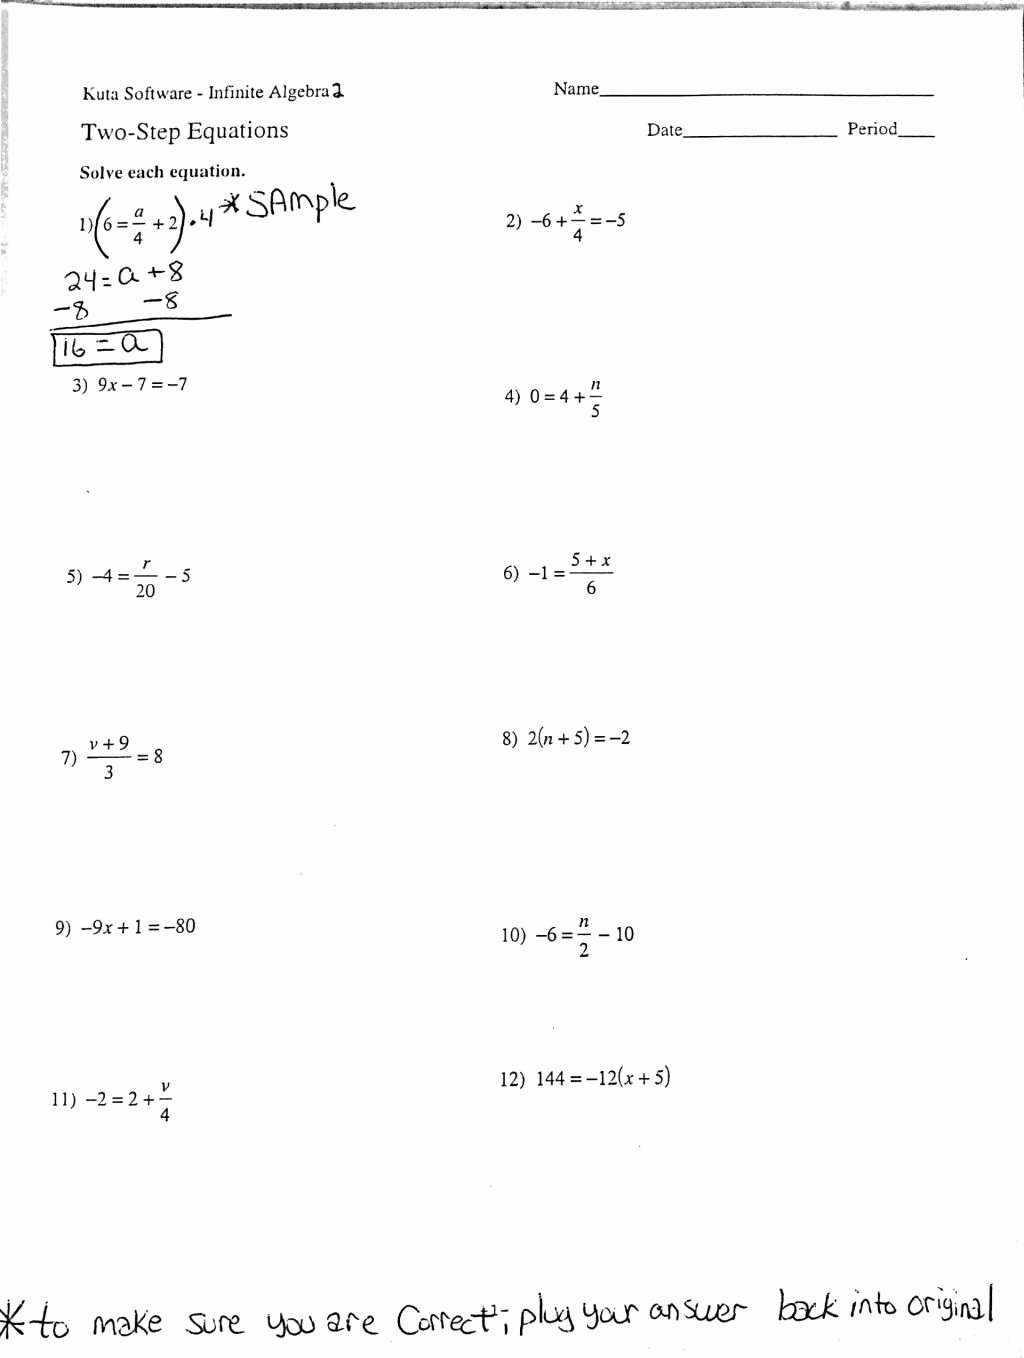 Respecting Others Property Worksheet Lovely Consecutive Integers Worksheet Siteraven